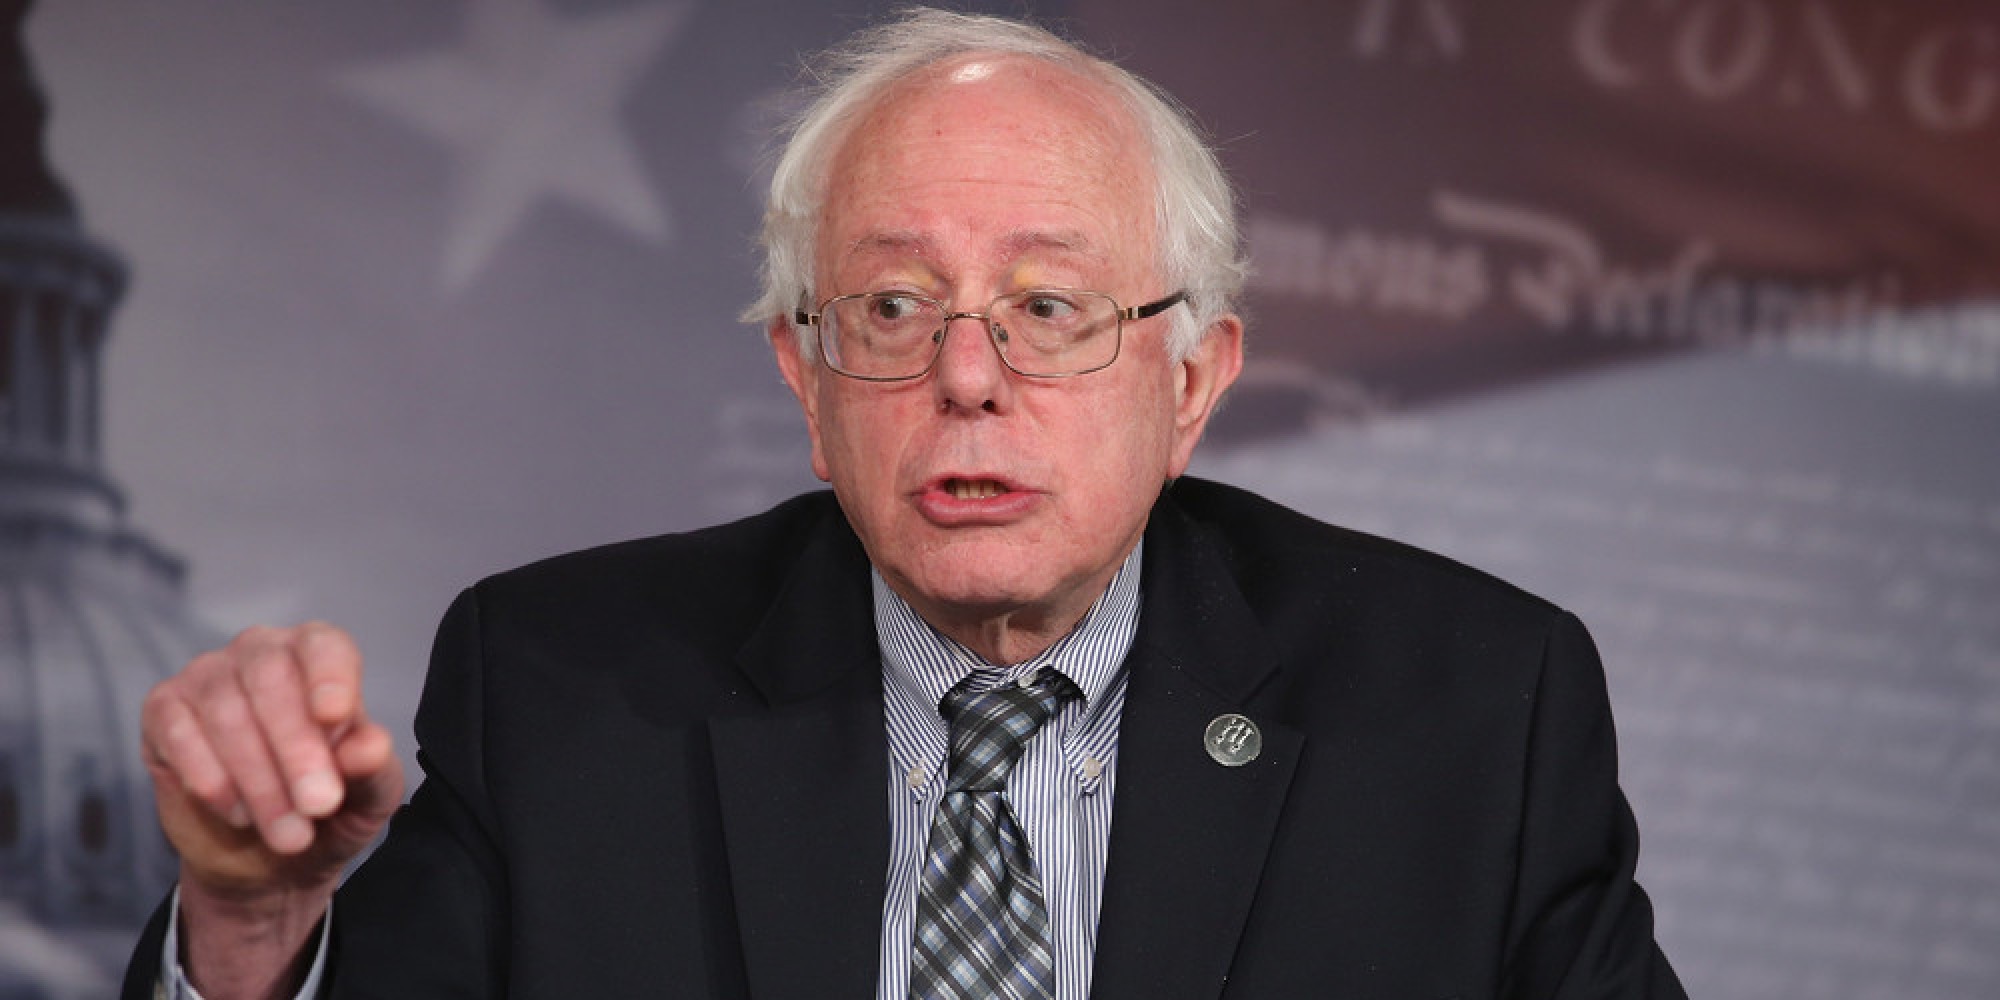 Sanders And DeFazio Introduce Legislation To Strengthen Social Security